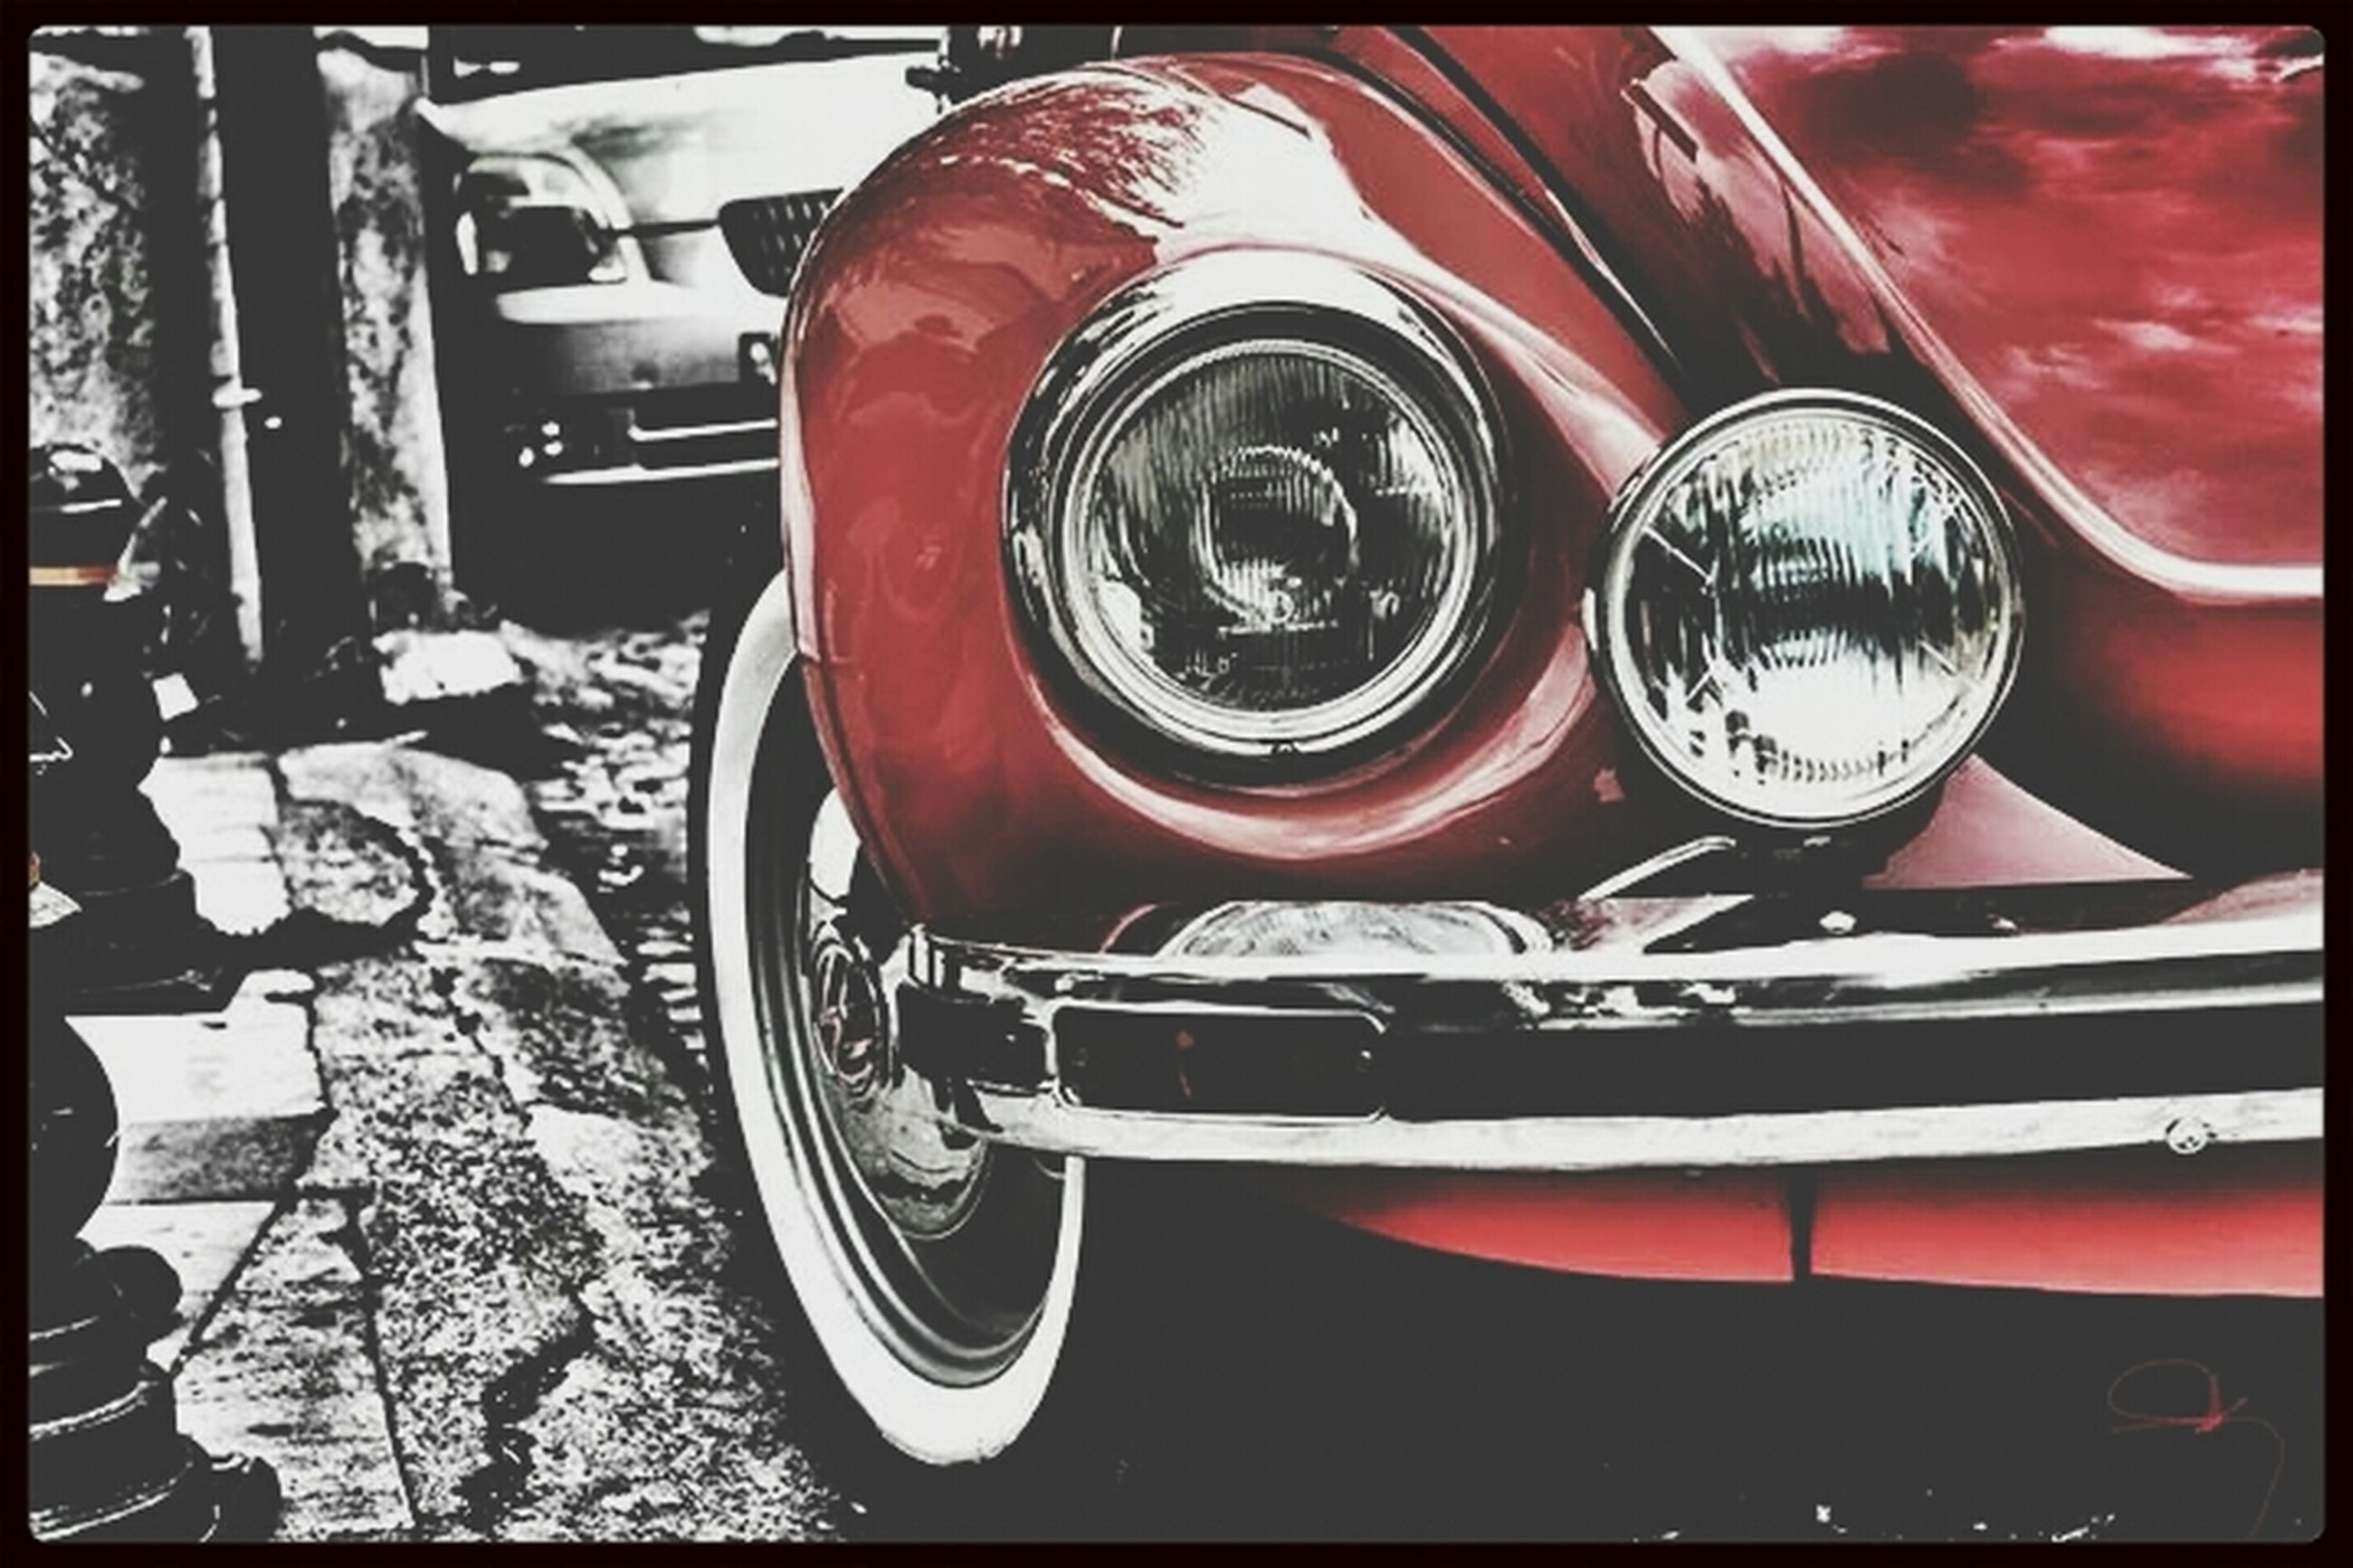 transfer print, auto post production filter, transportation, red, mode of transport, land vehicle, car, retro styled, old-fashioned, no people, day, close-up, wheel, stationary, vintage, indoors, reflection, vintage car, metal